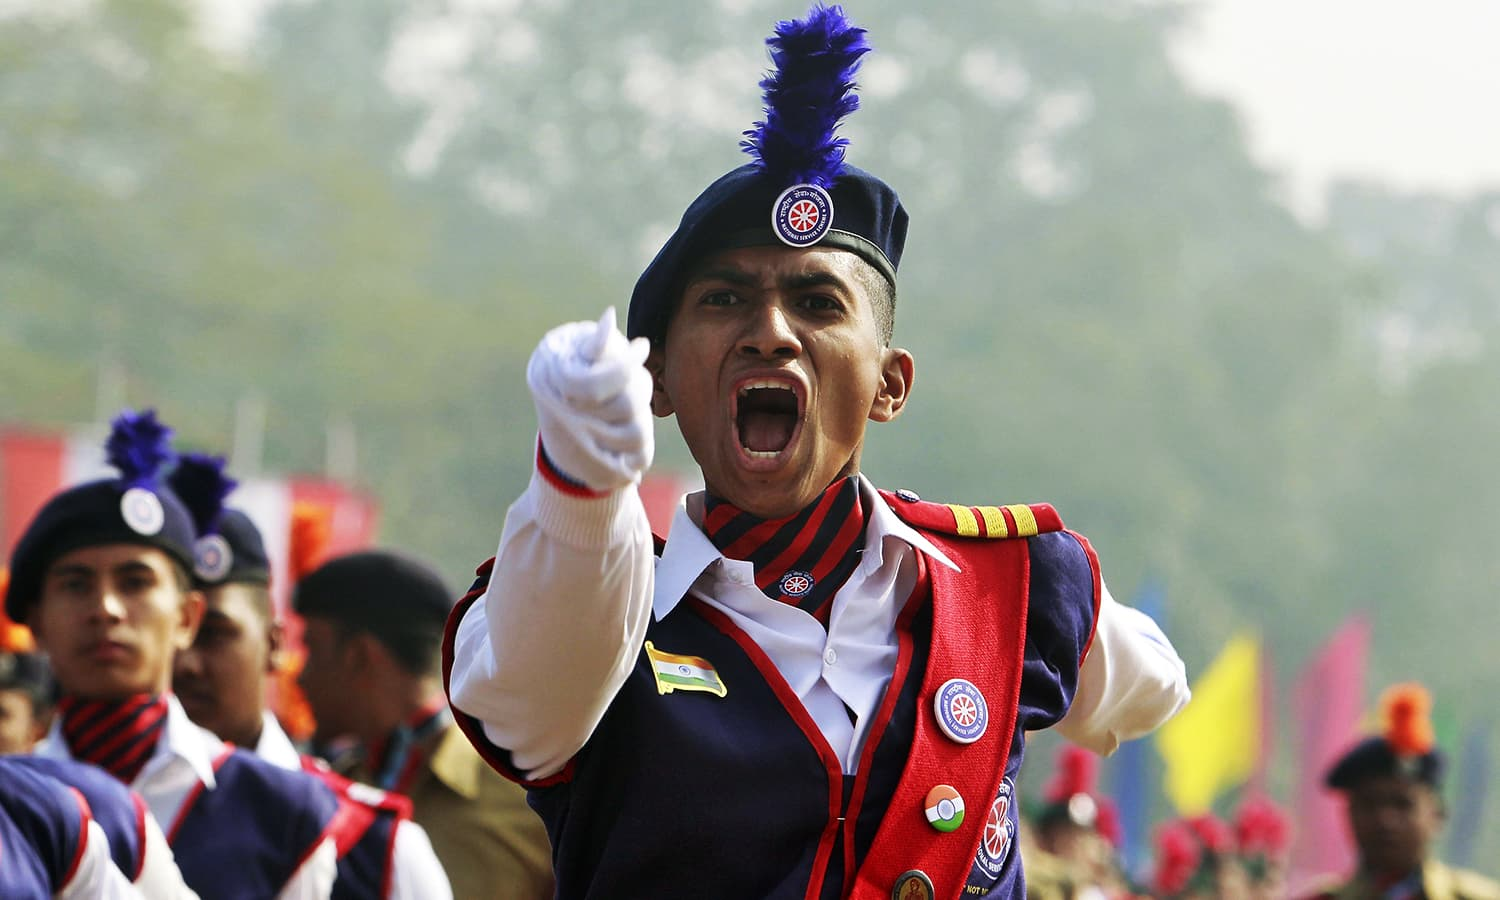 A member of National Service Scheme shouts commands as he takes part in the Republic Day parade in Agartala, India. ─ Reuters